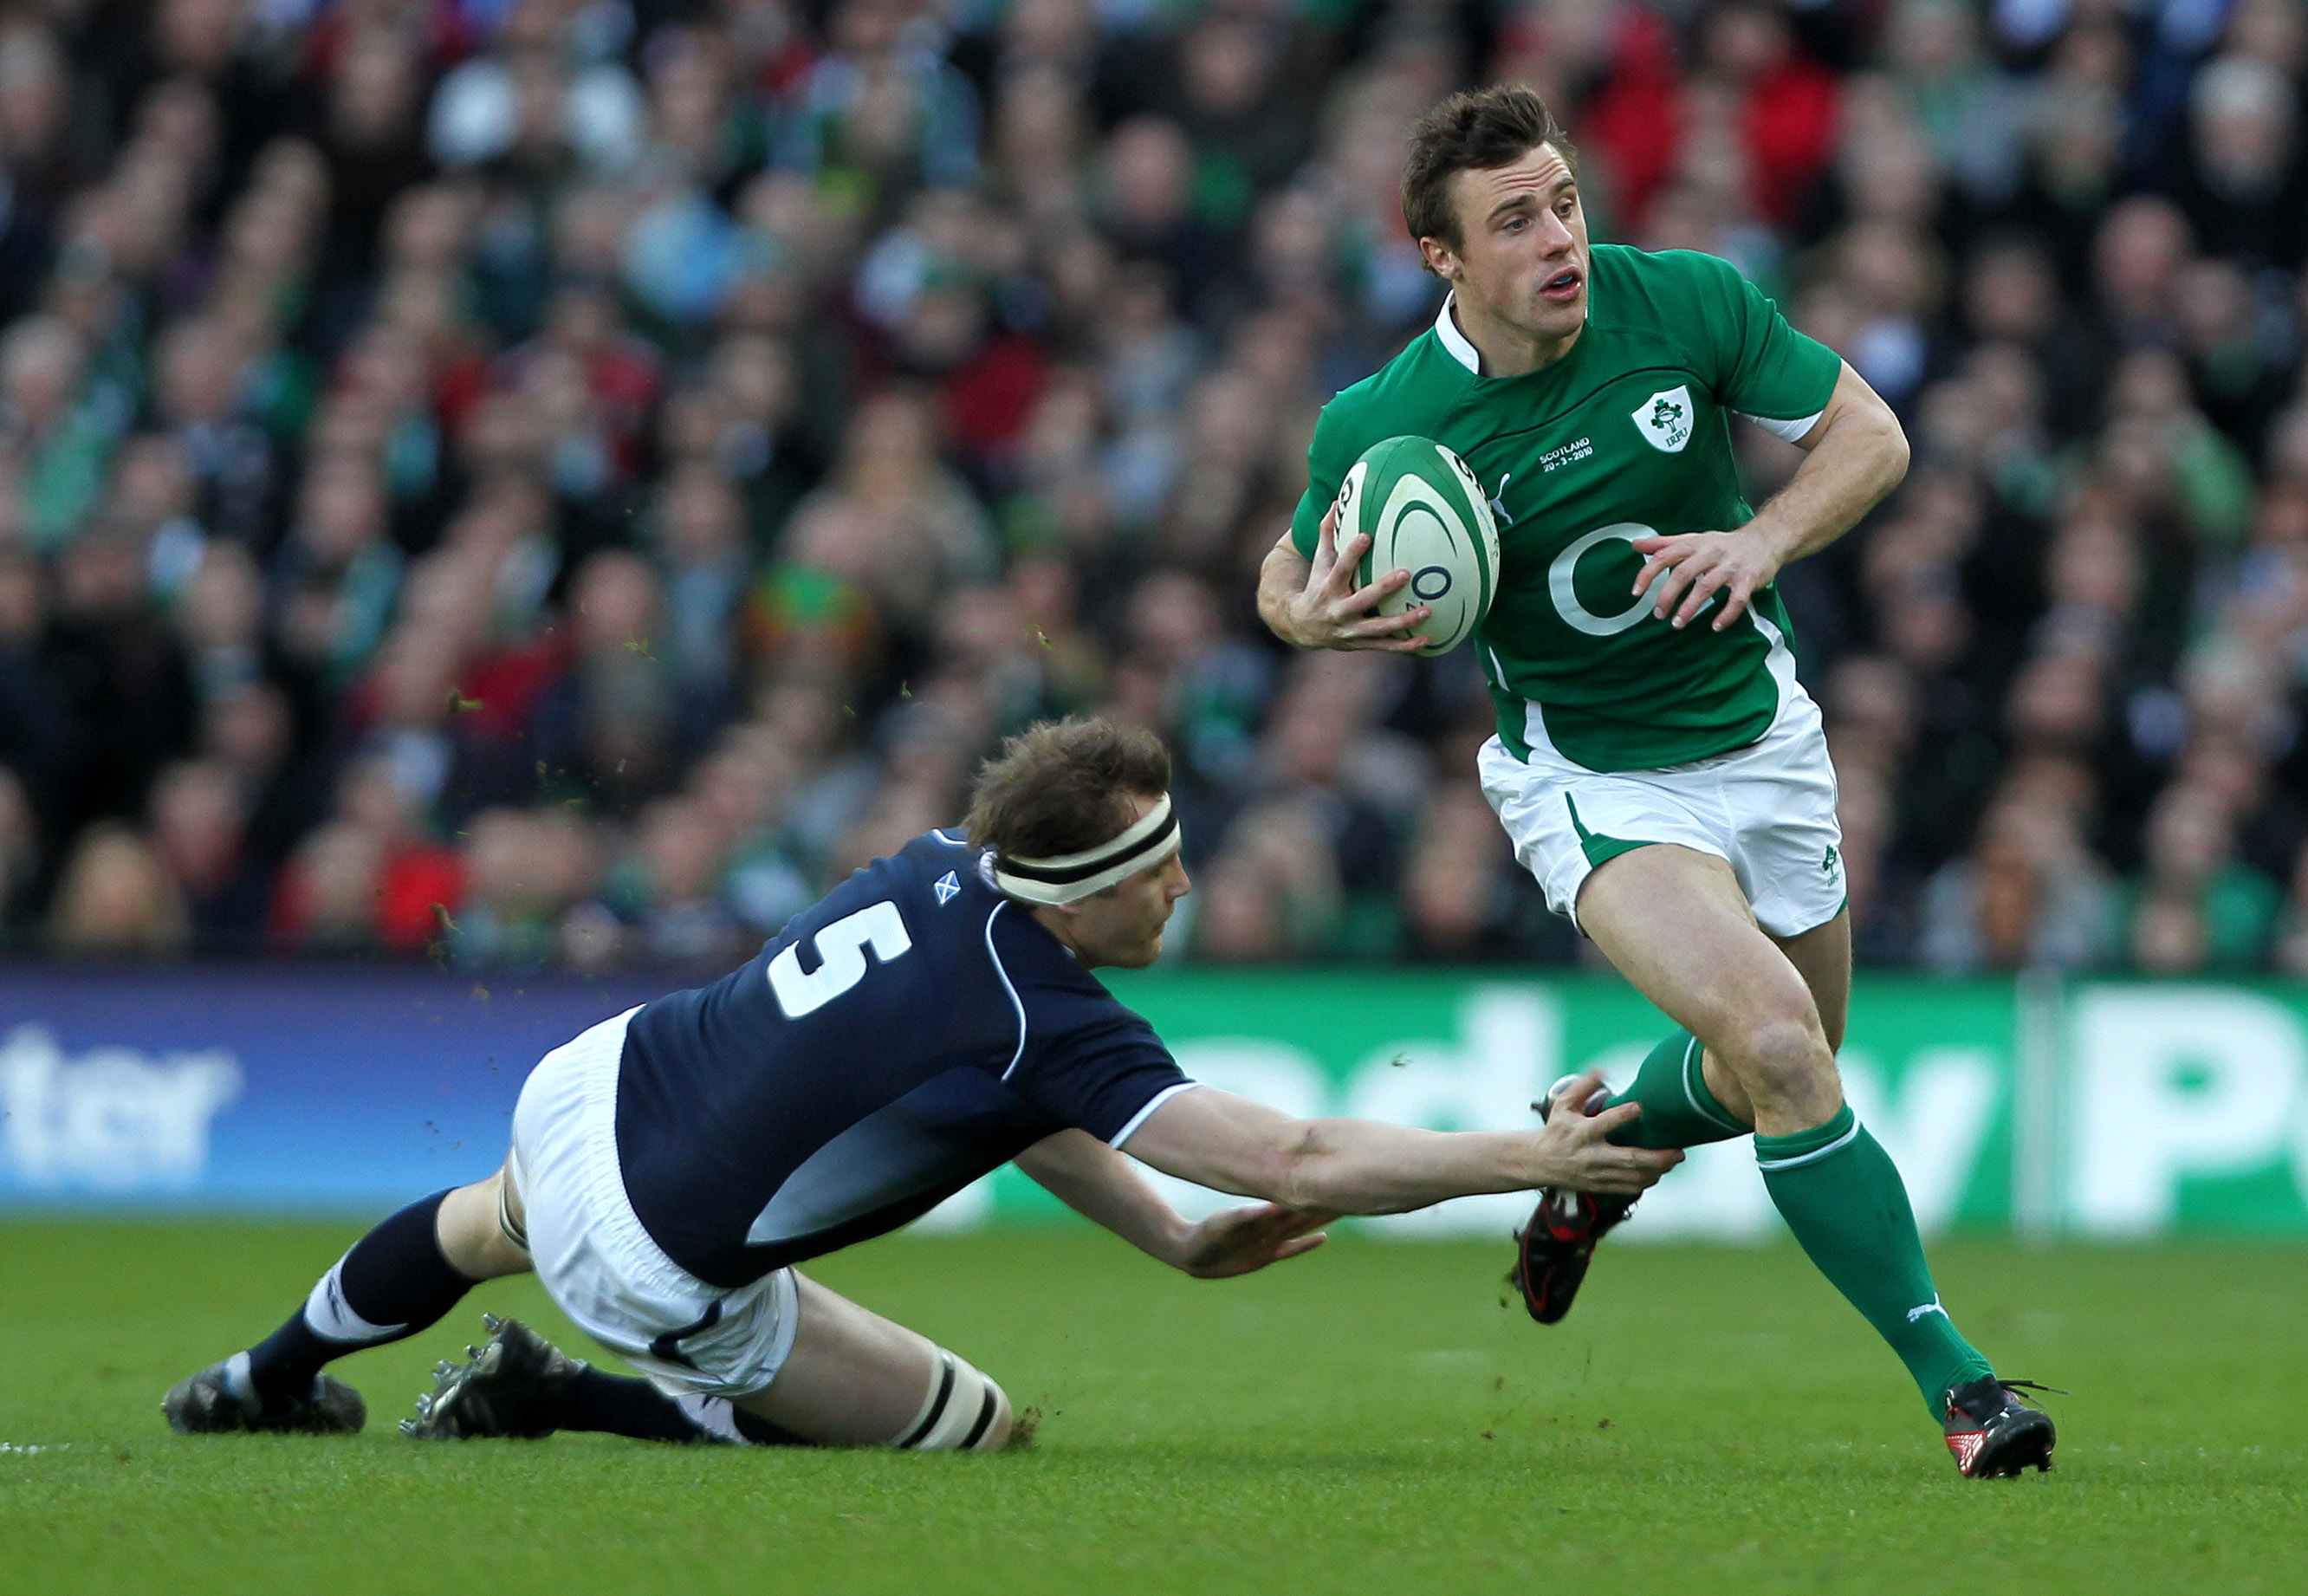 Tommy Bowe tackled by Al Kellock 20/3/2010